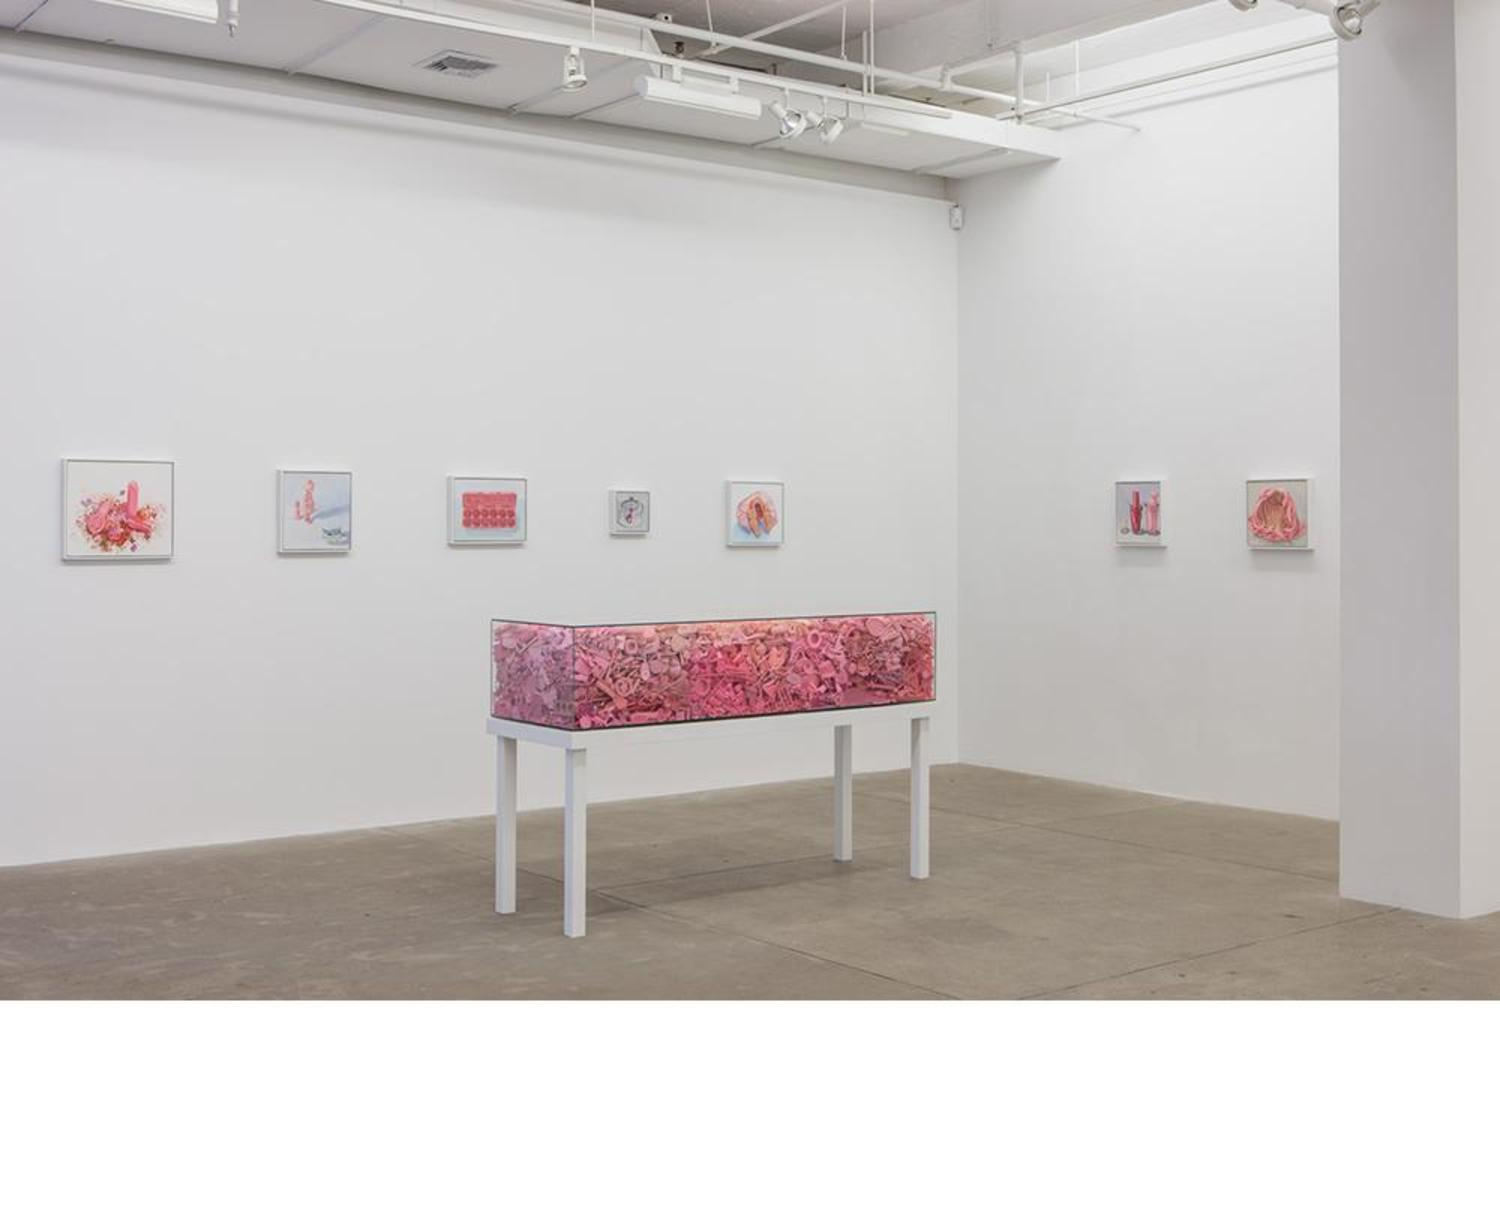 A Visual Art Exhibit That Offers A Unique Display Of Femininity